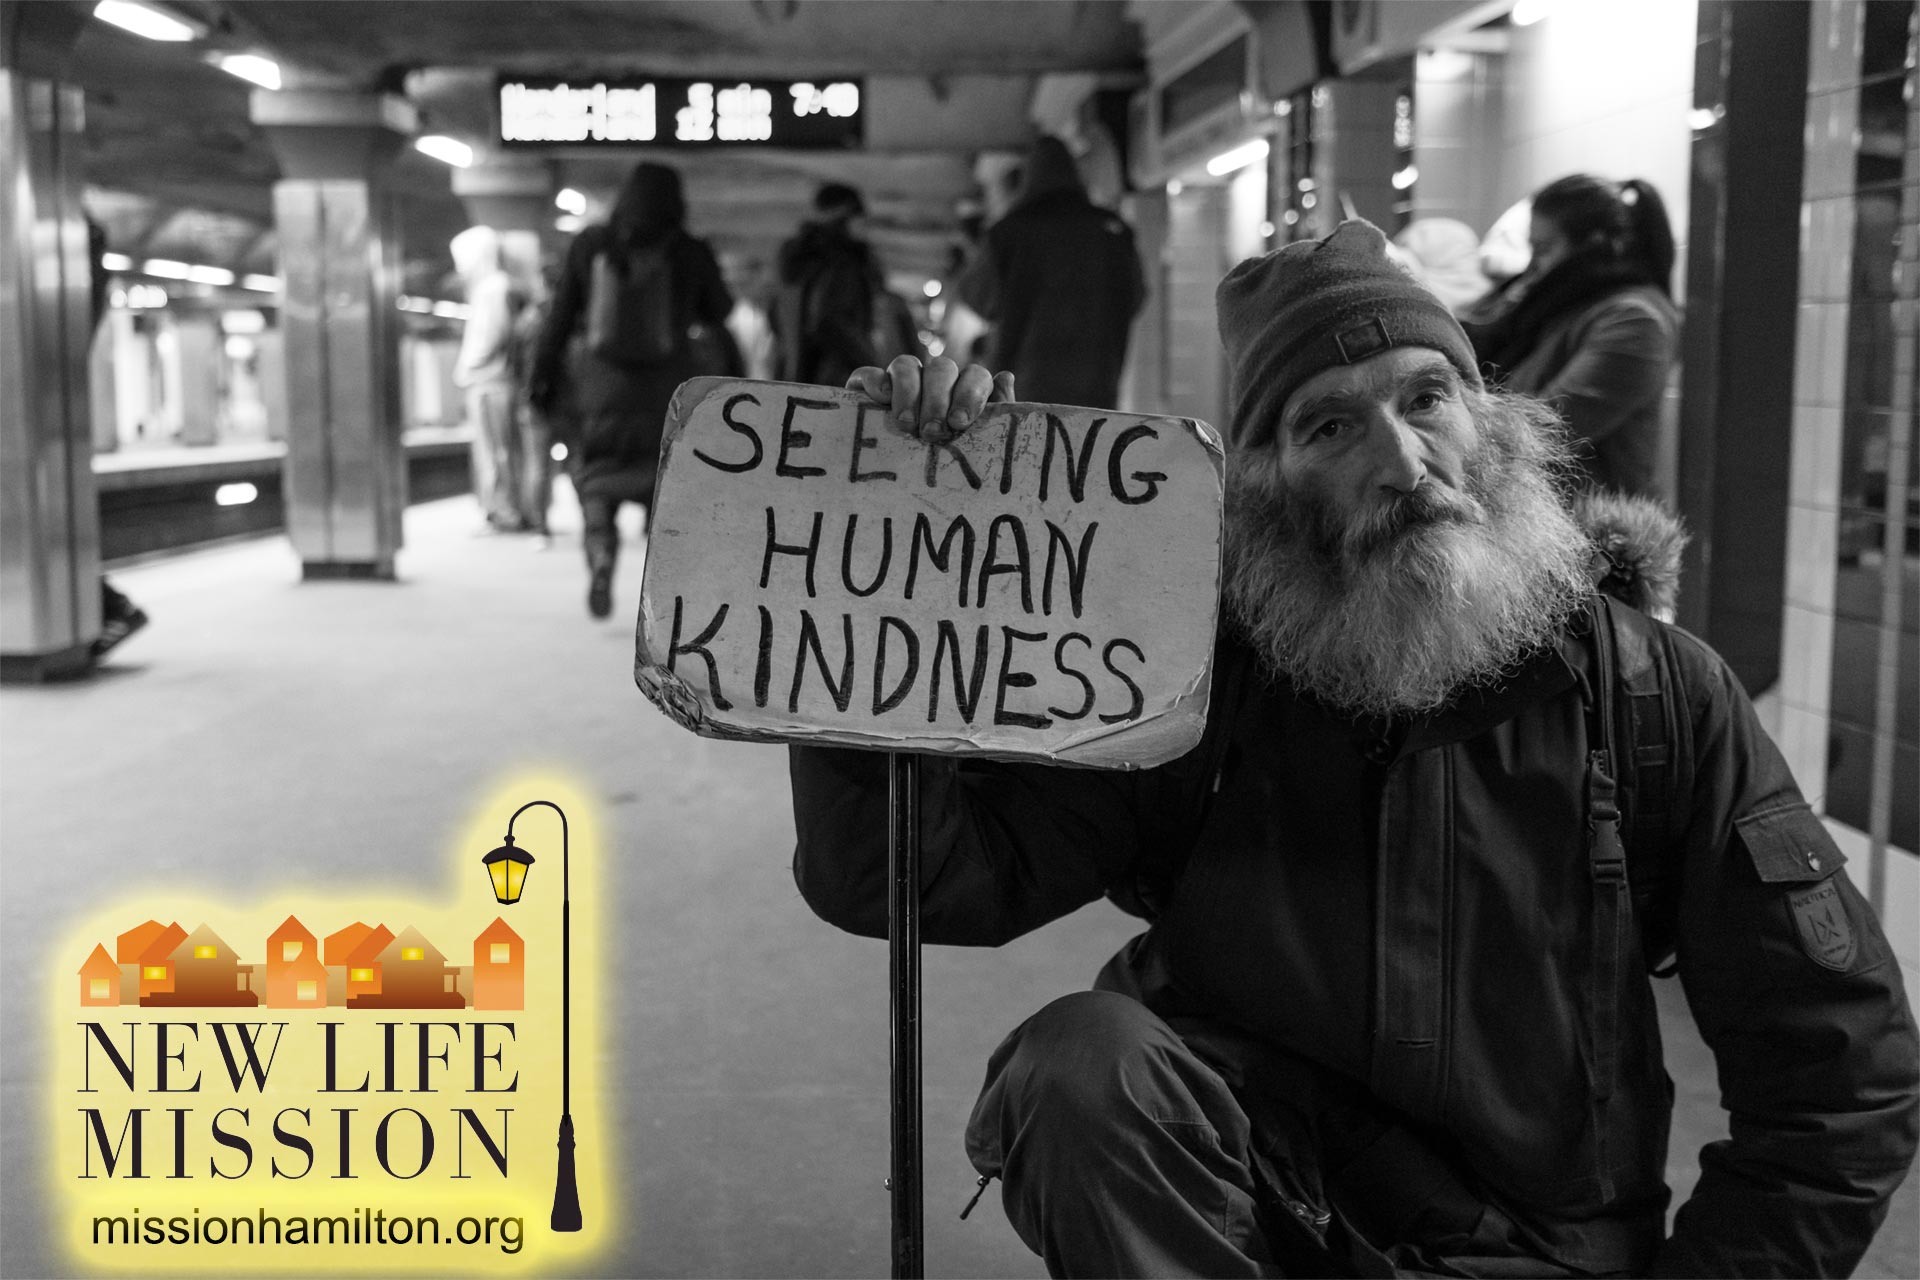 New-Life-Mission-Hamilton-Ohio-Hope-for-the-Homeless-Man-with-sign-seeking-human-kindness-v3